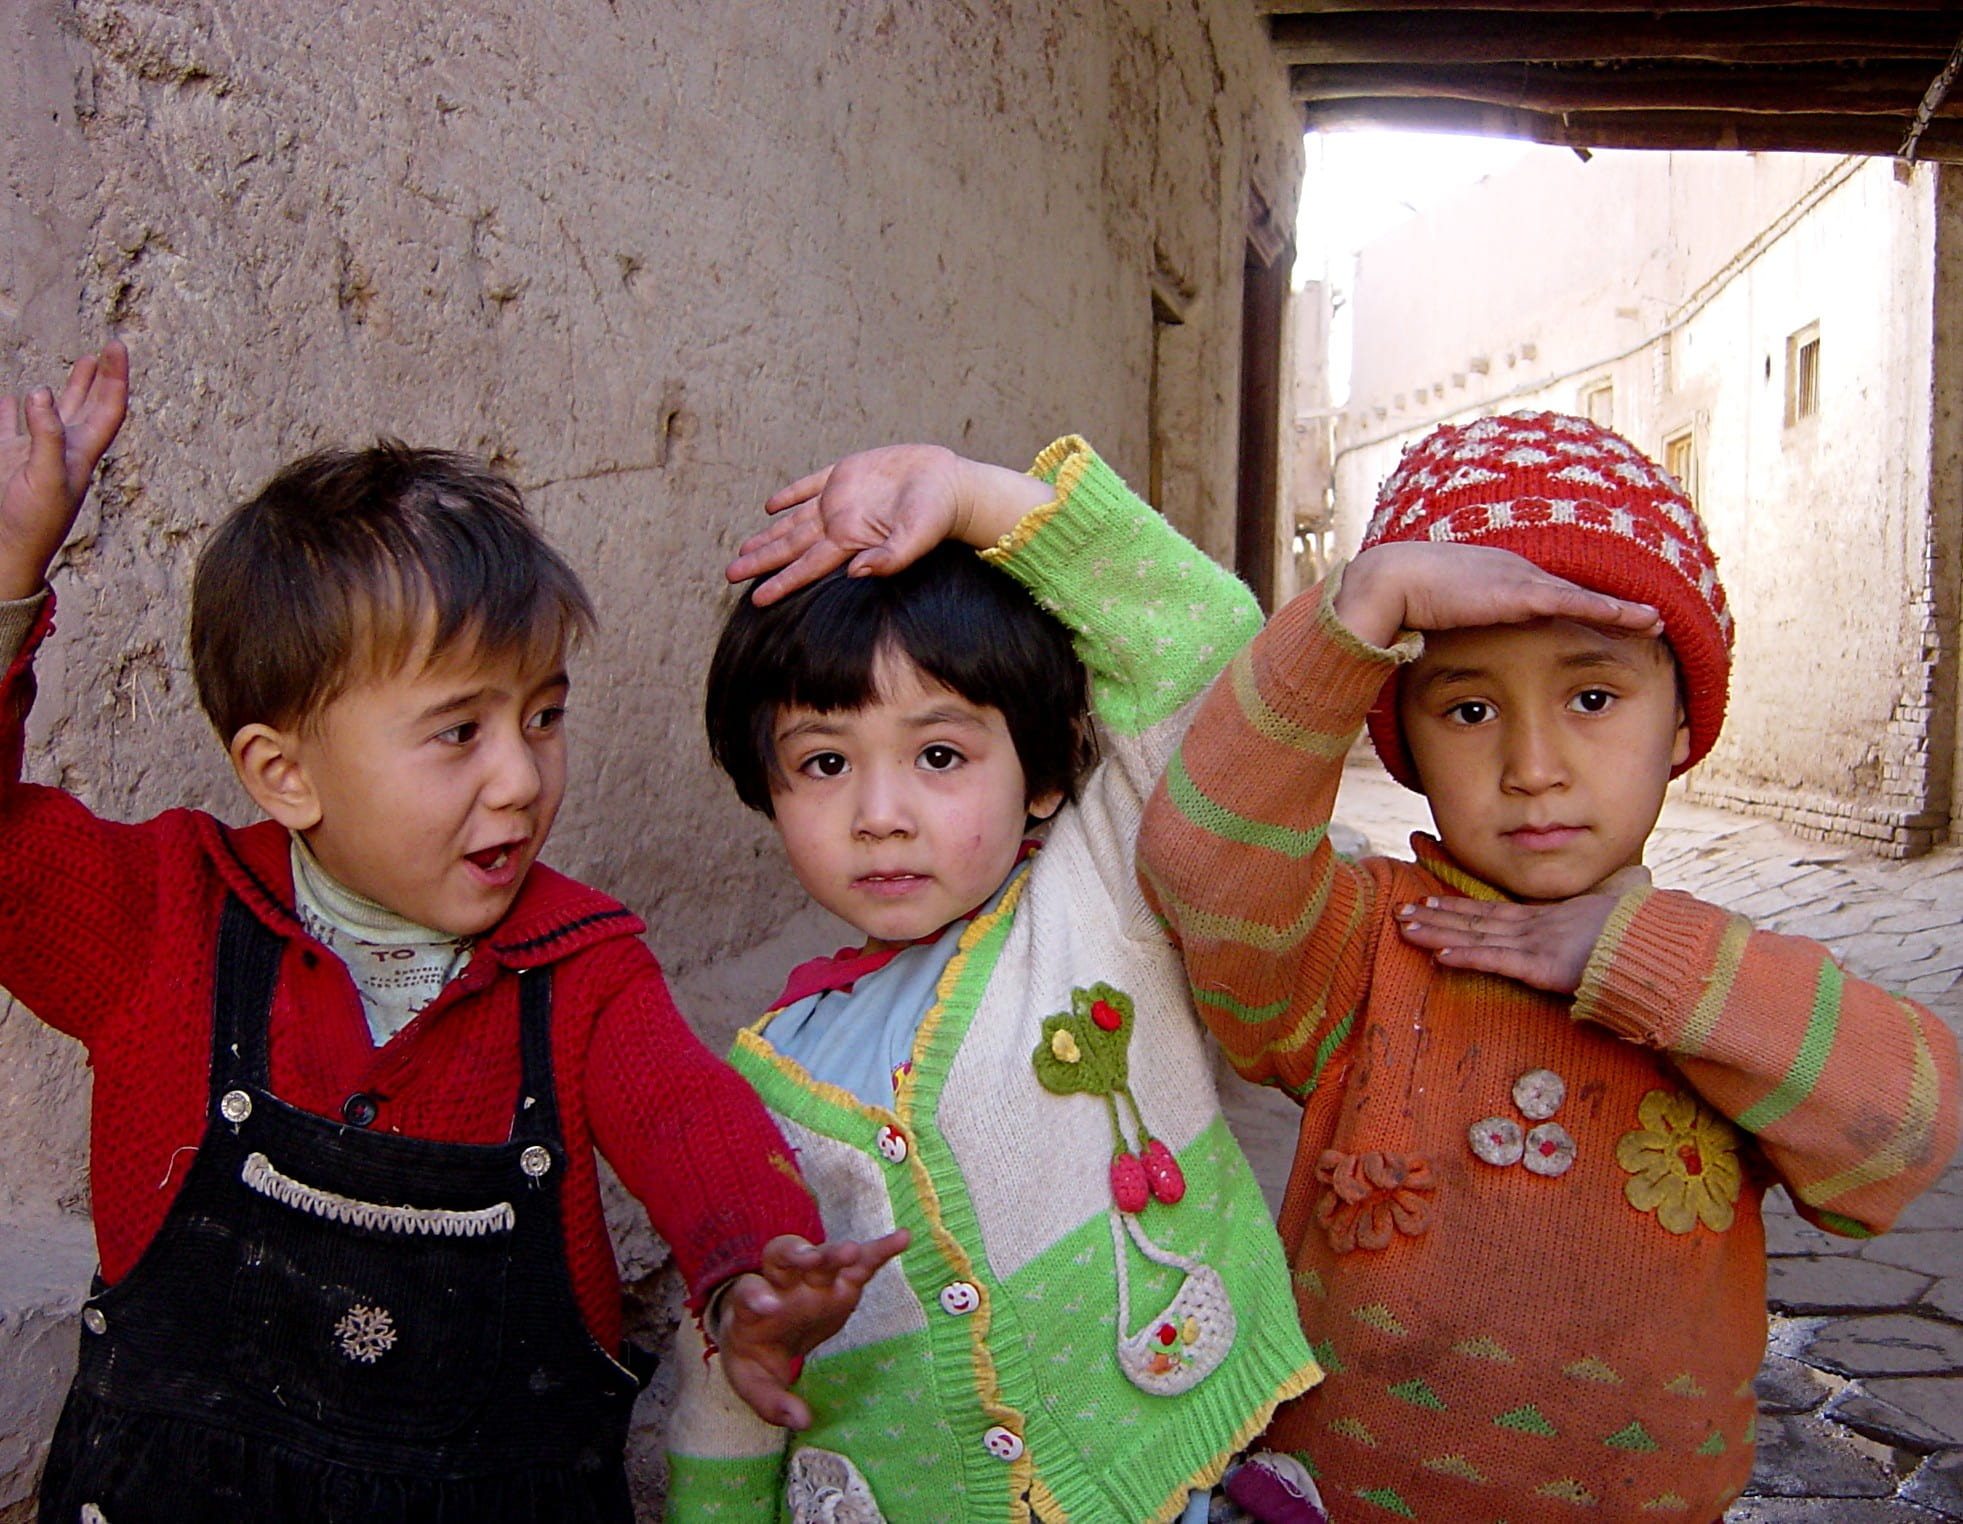 Uyghur children in old town Kashgar, China.